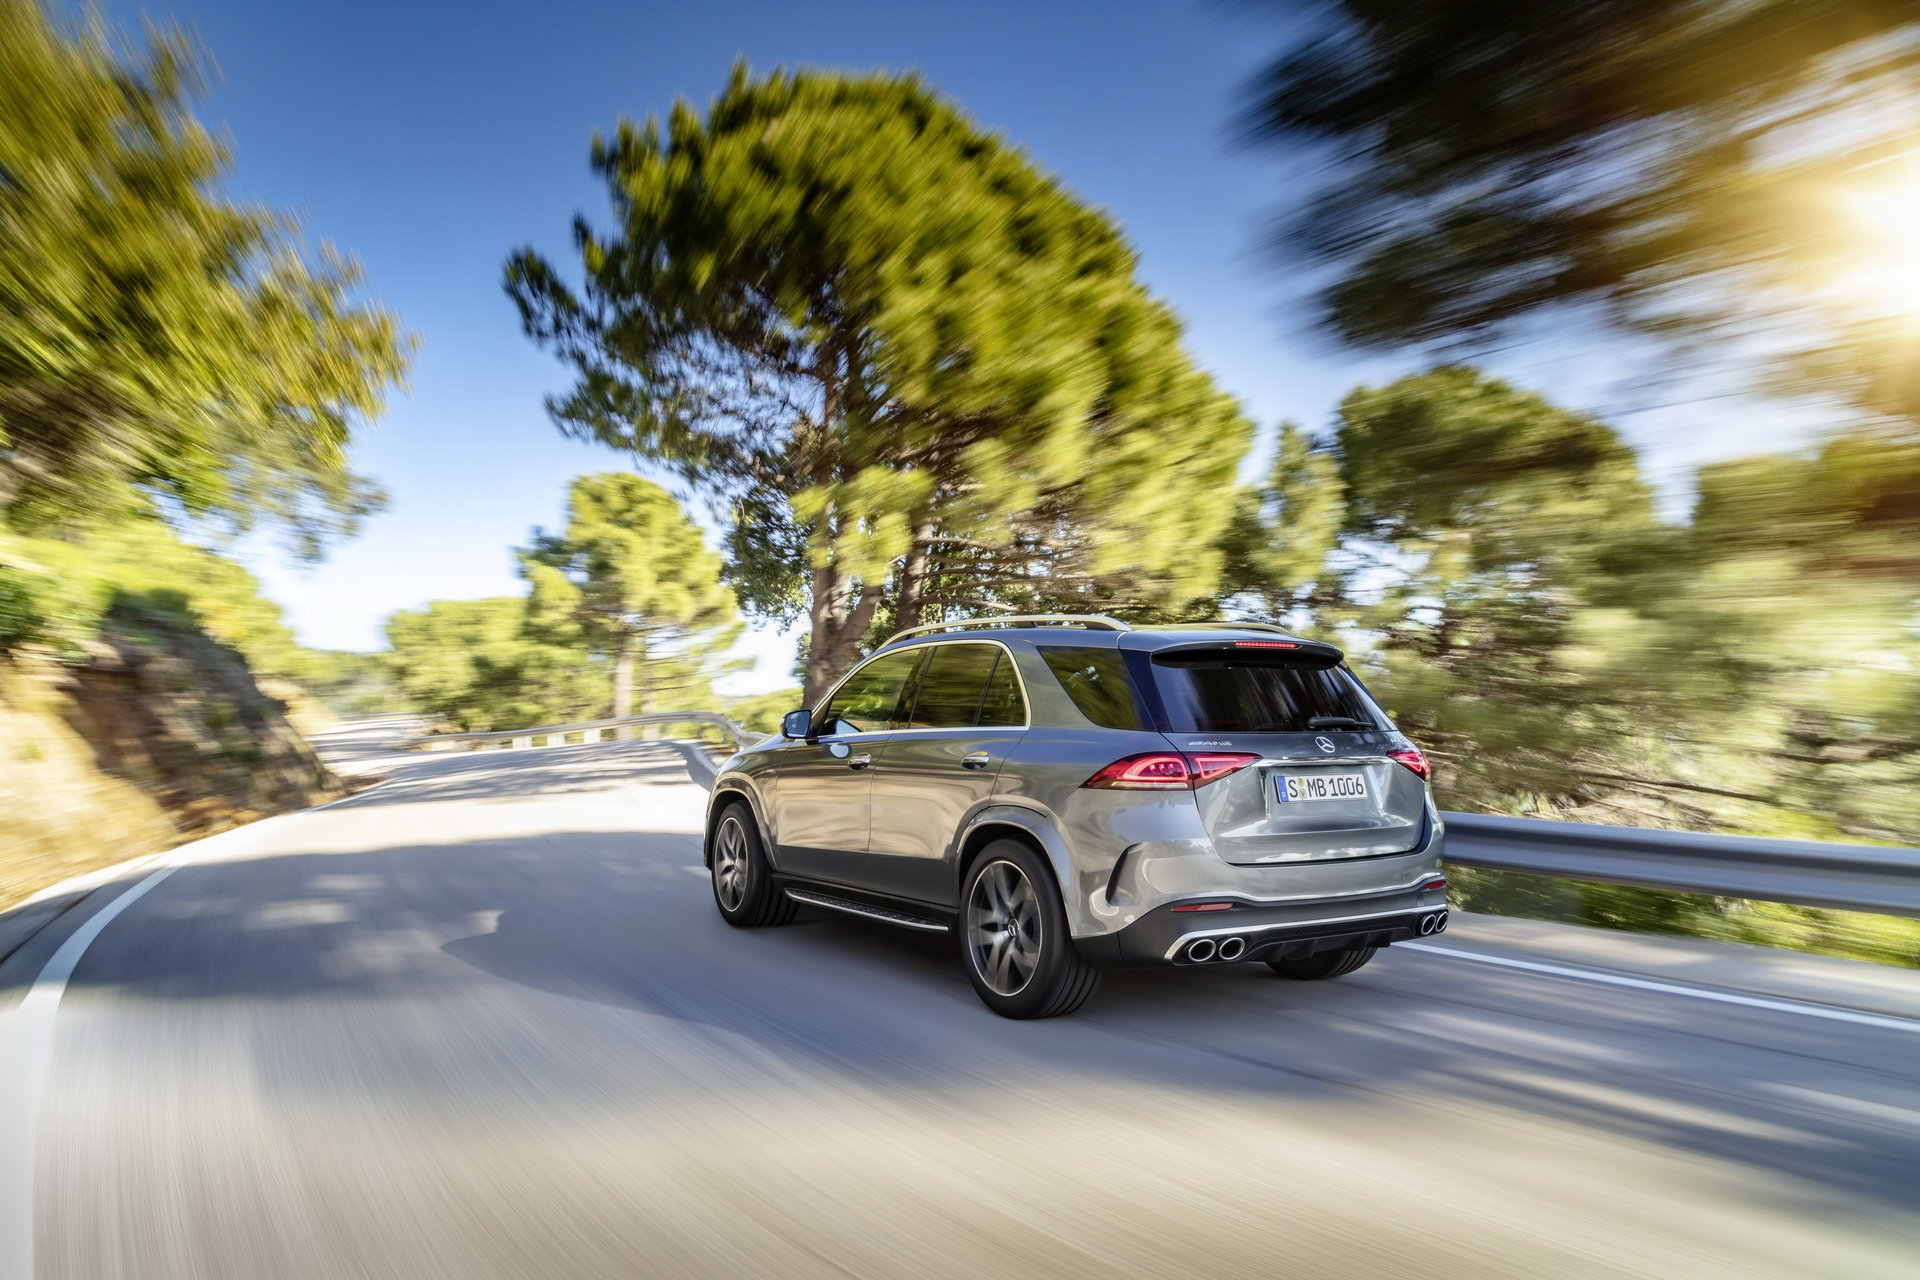 2020 Mercedes-AMG GLE 53 4MATIC+ (Color: Selenite Grey) Rear Three-Quarter Wallpapers (3)